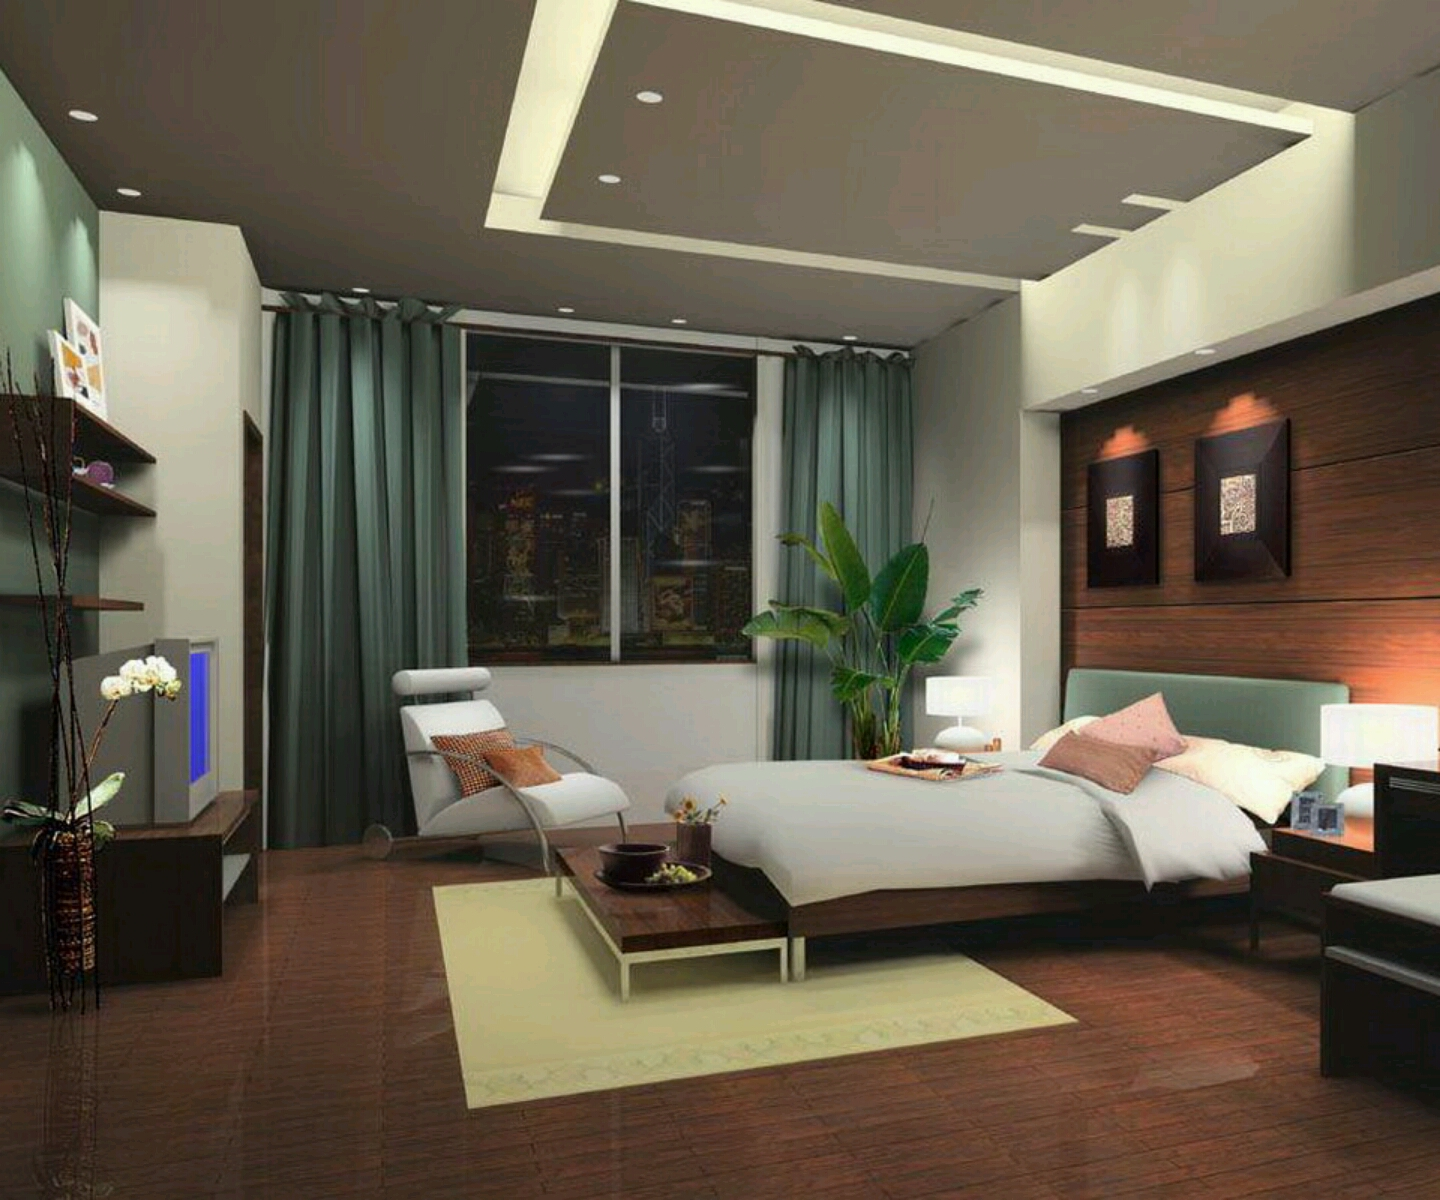 New home designs latest modern bedrooms designs best ideas for House bedroom ideas